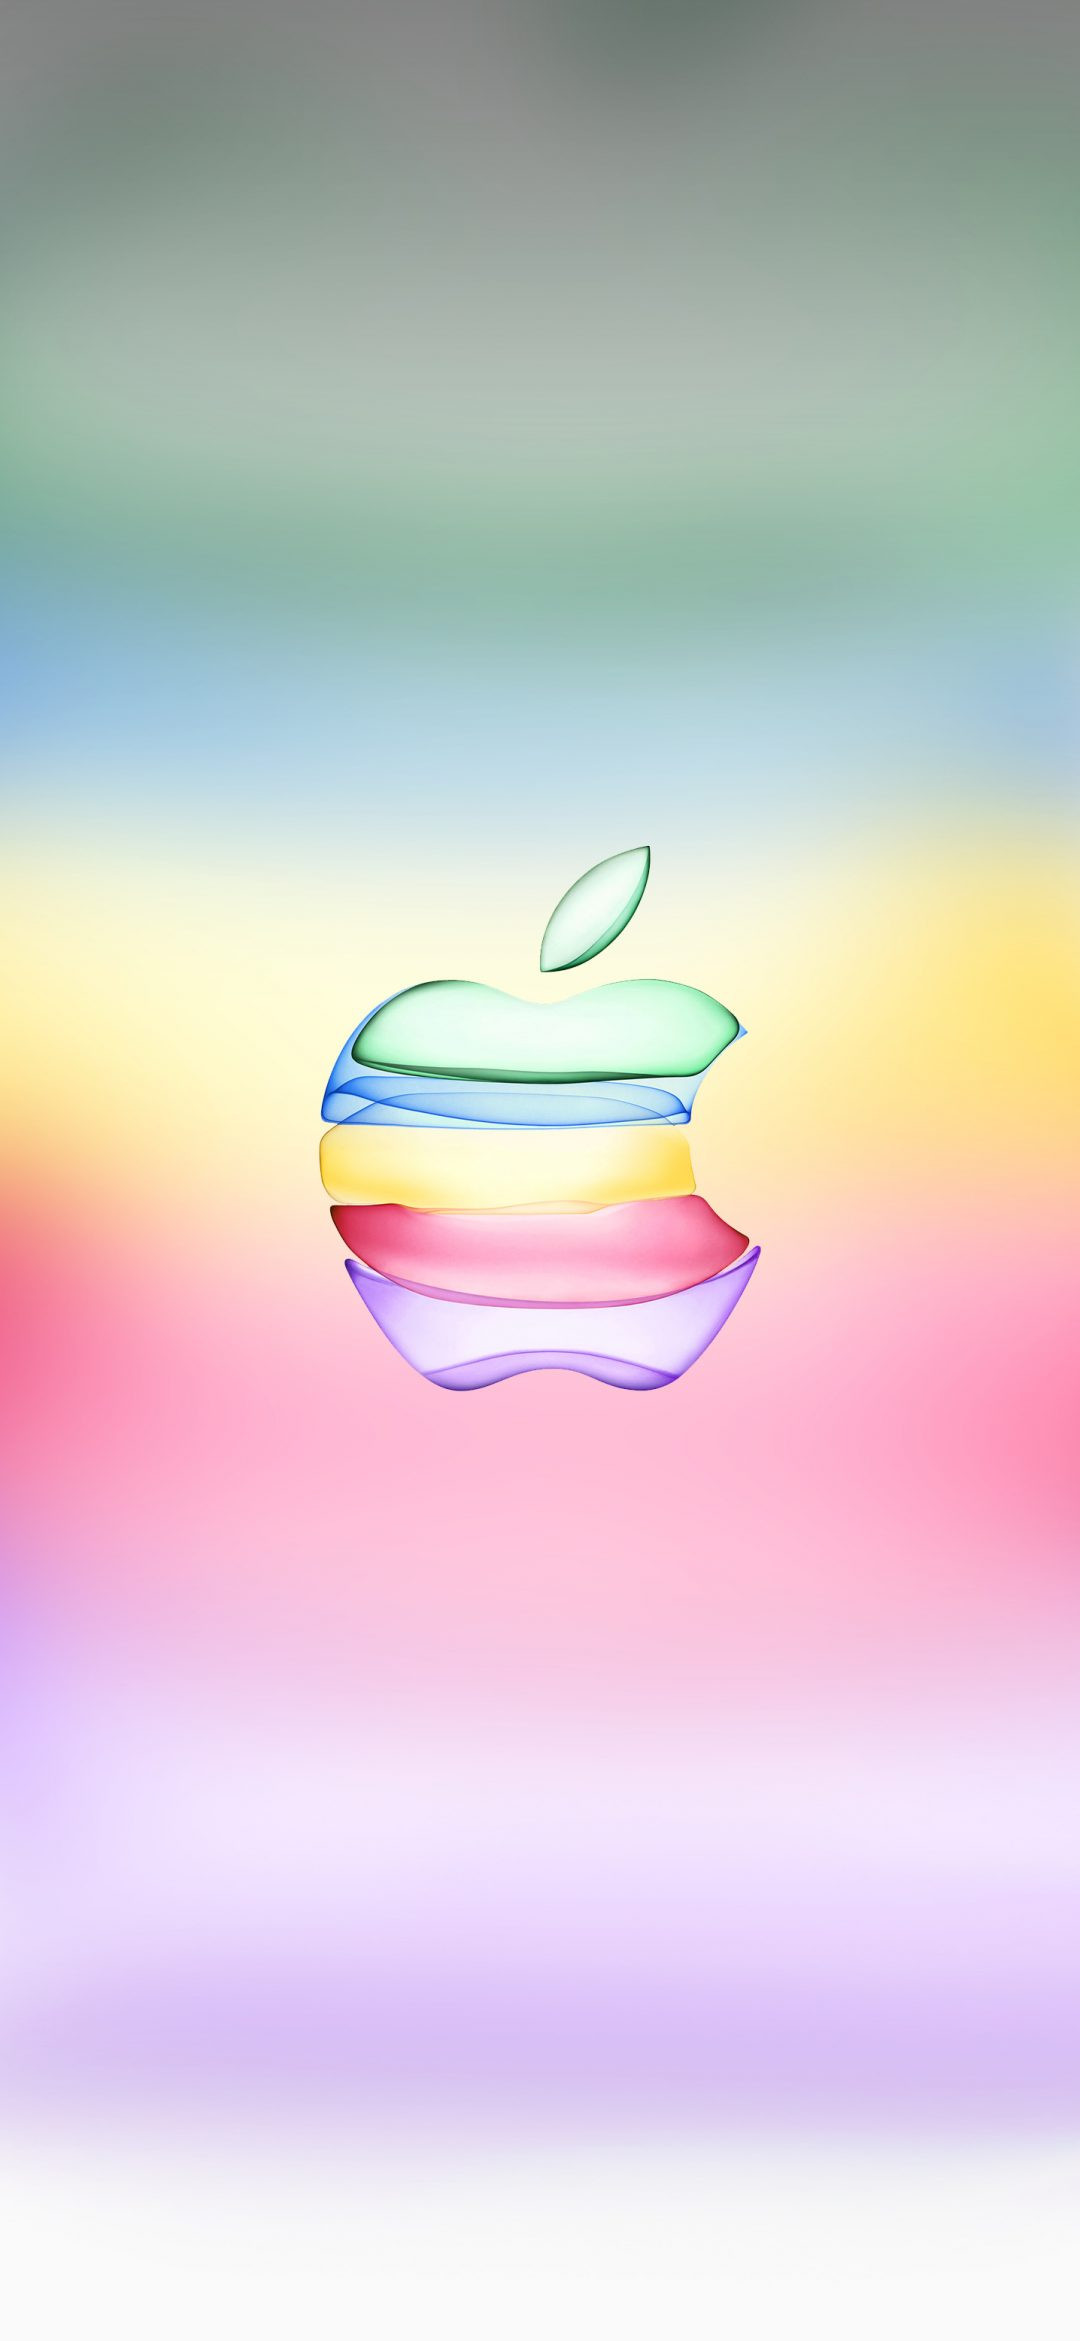 iphone 11 pro 4k 2020 wallpapers